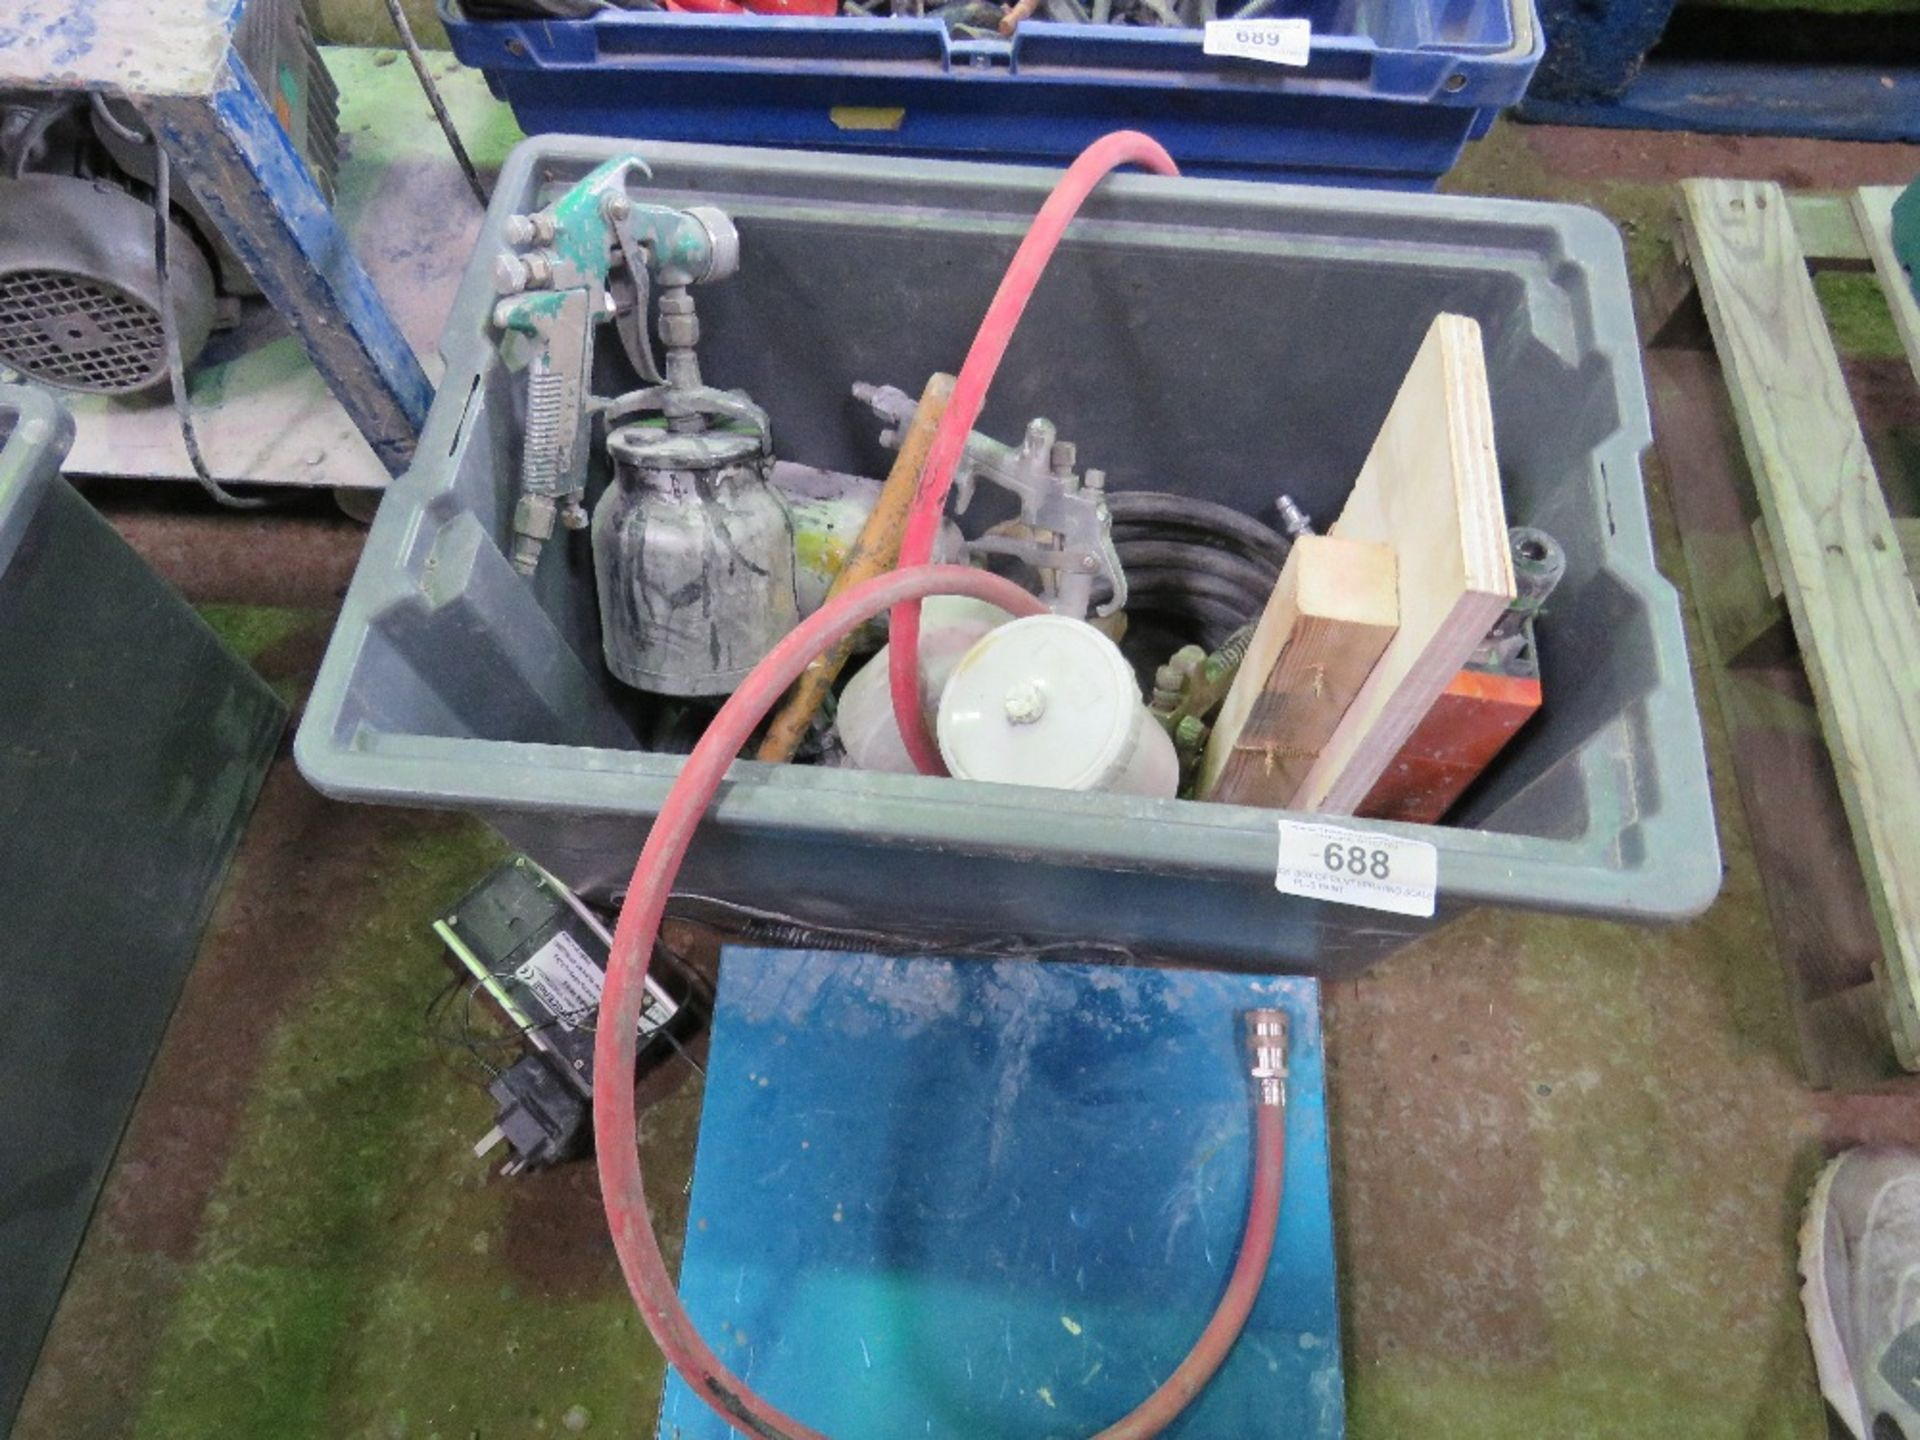 Lot 688 - BOX OF PAINT SPRAYING SCALES PLUS PAINT WEGHING SCALES.....DIRECT EX COMPANY LIQUIDATION